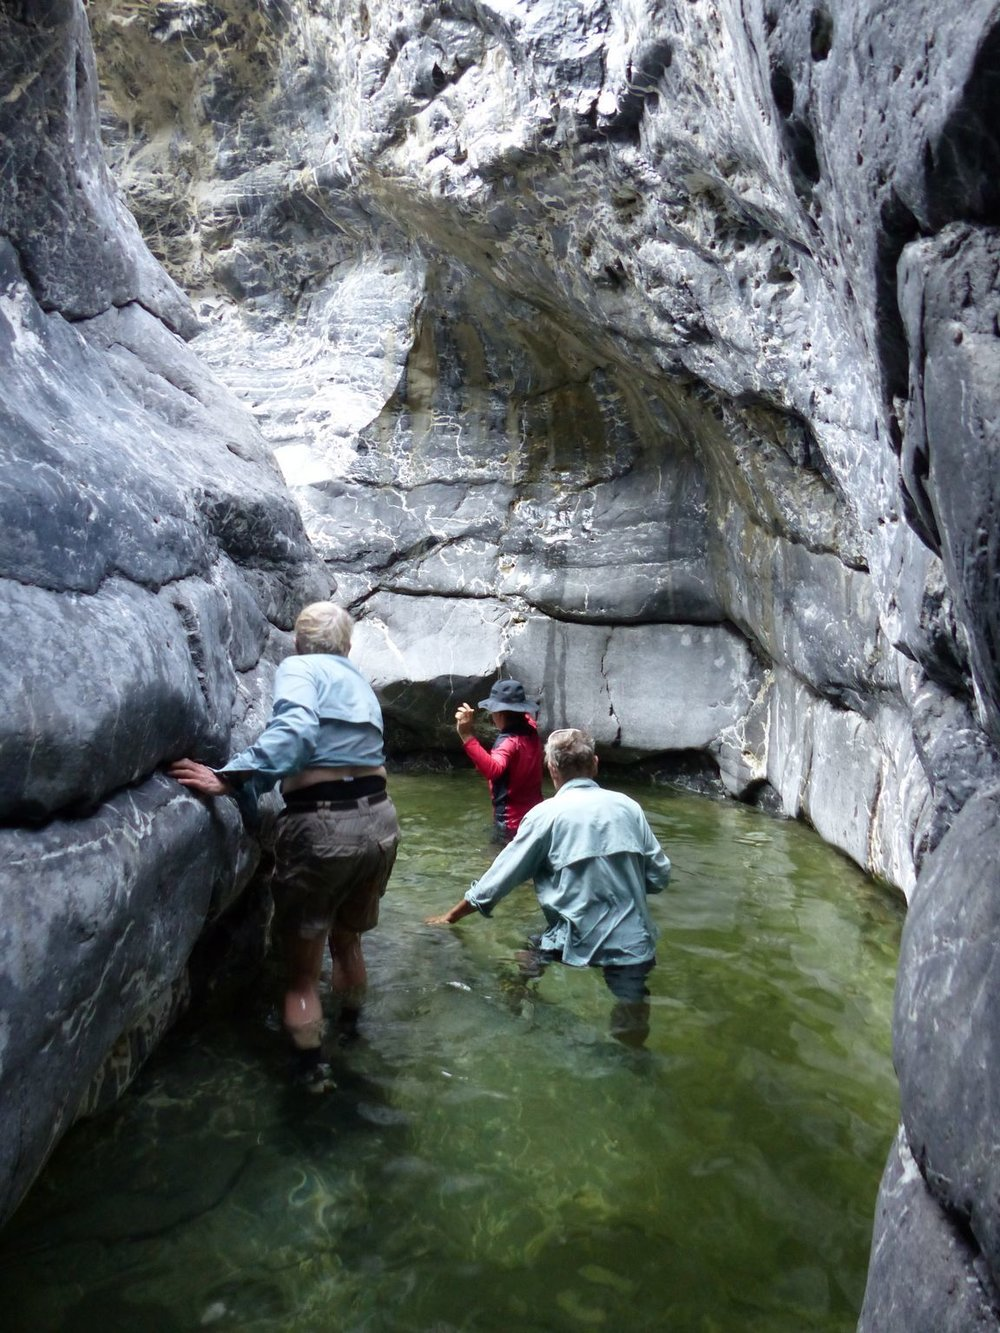 Explorers in Lafferty's Canyon.